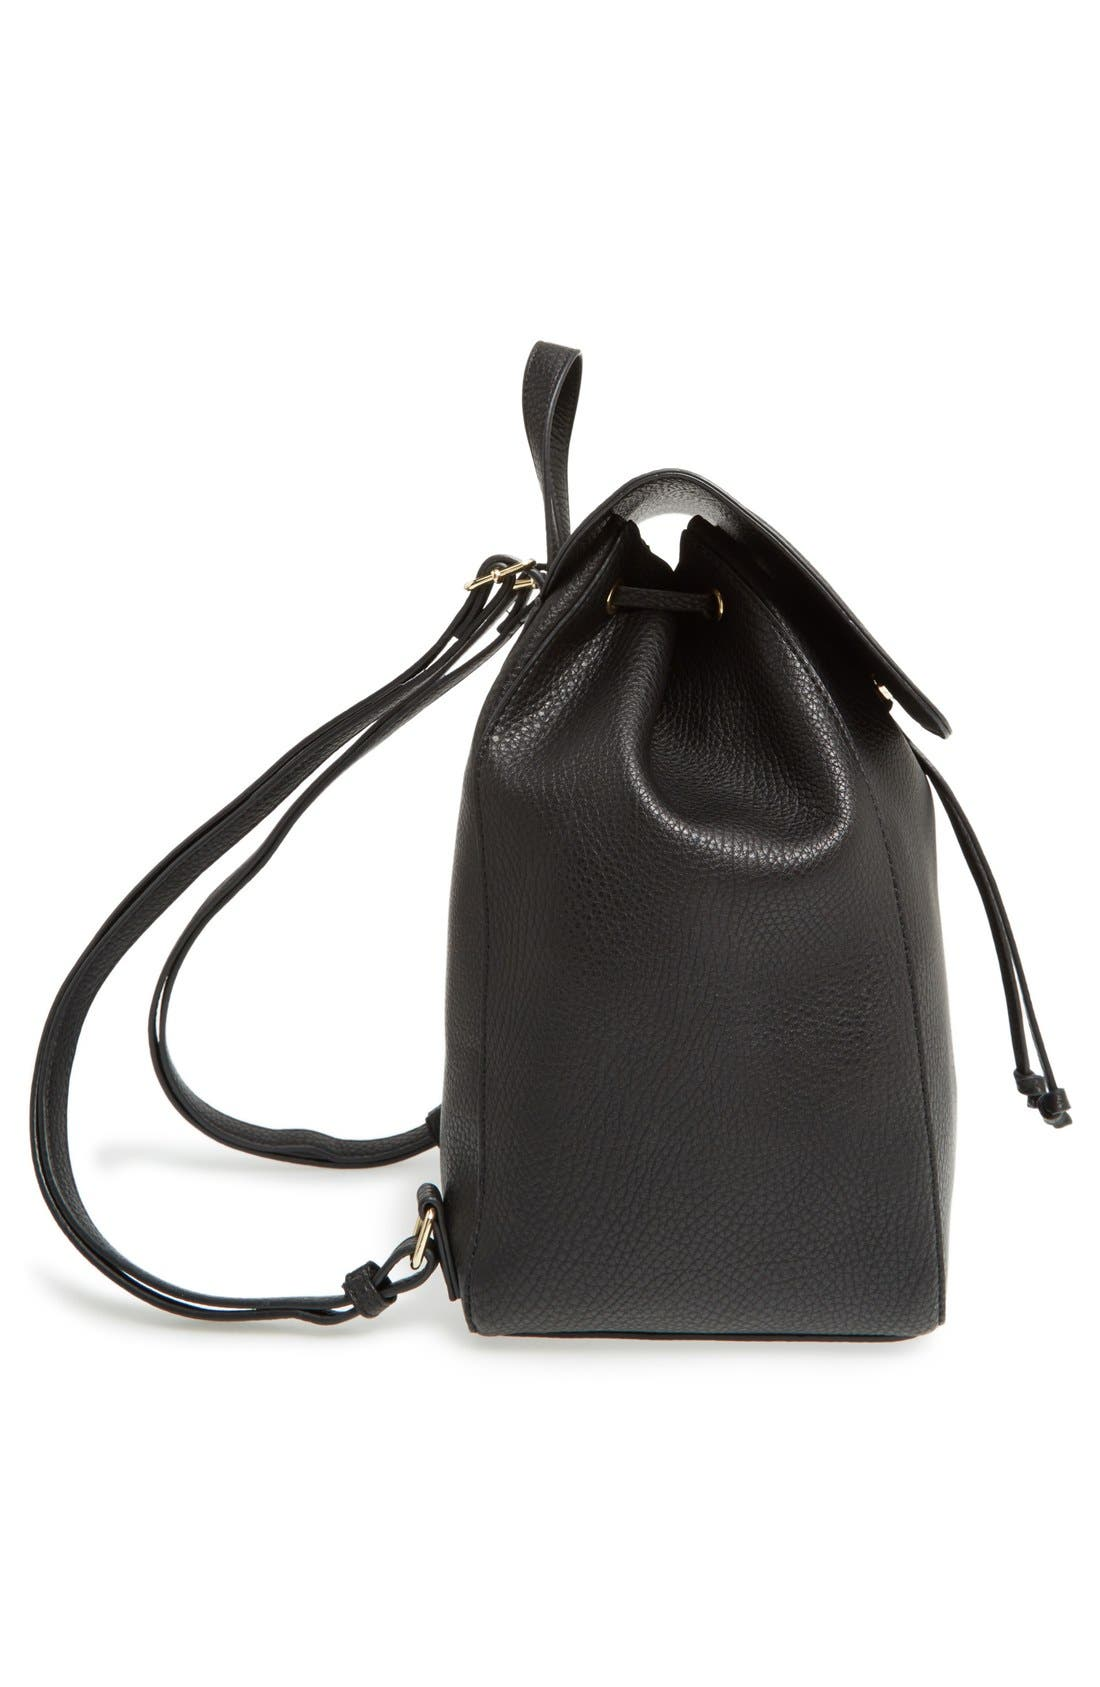 SOLE SOCIETY,                             'Iver' Faux Leather Drawstring Backpack,                             Alternate thumbnail 6, color,                             001